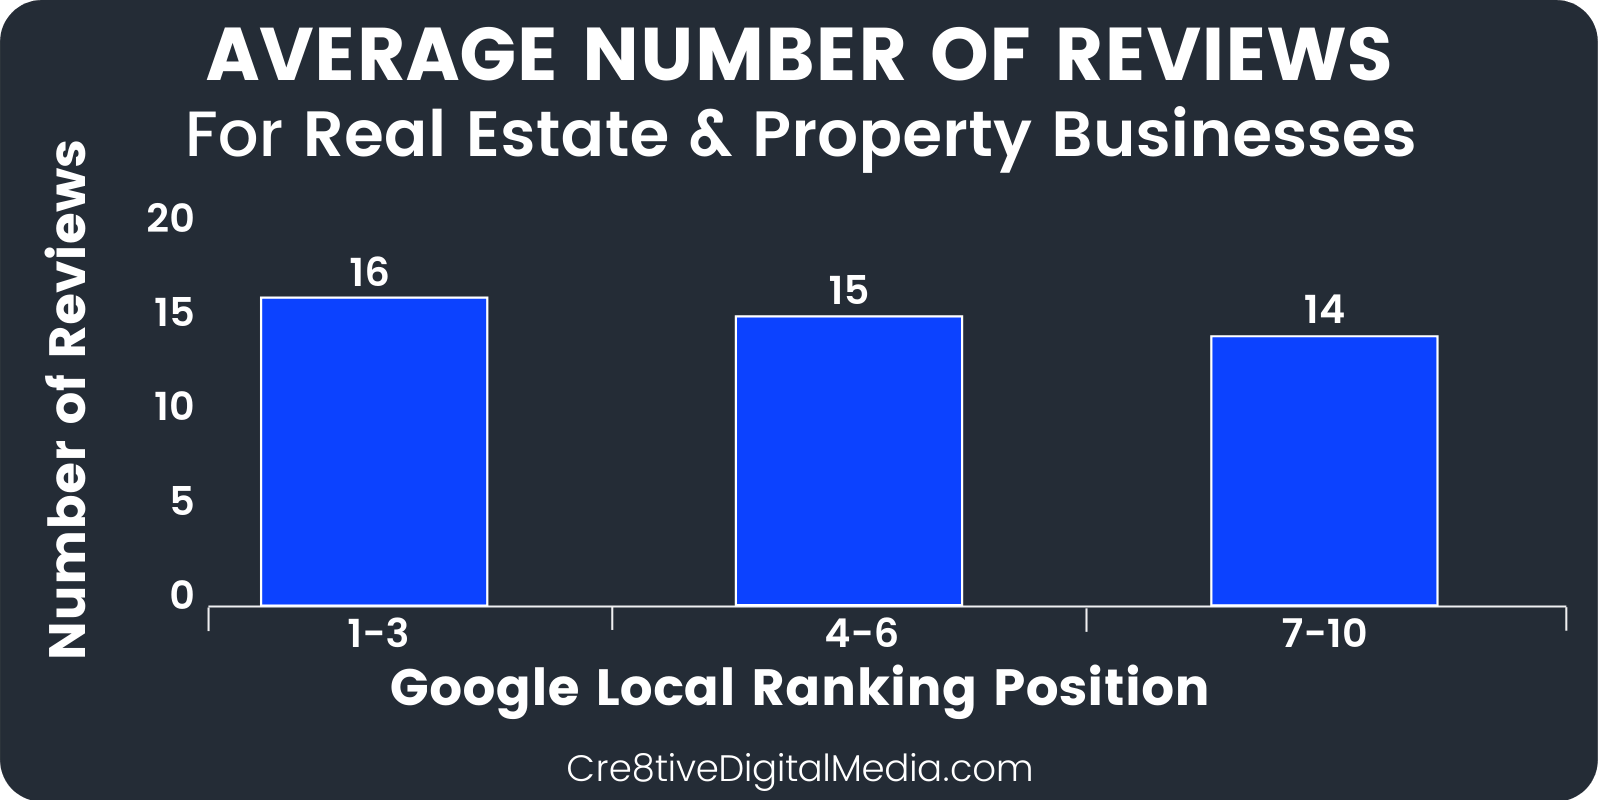 Number of Reviews for Real Estate Businesses and Local Ranking Position